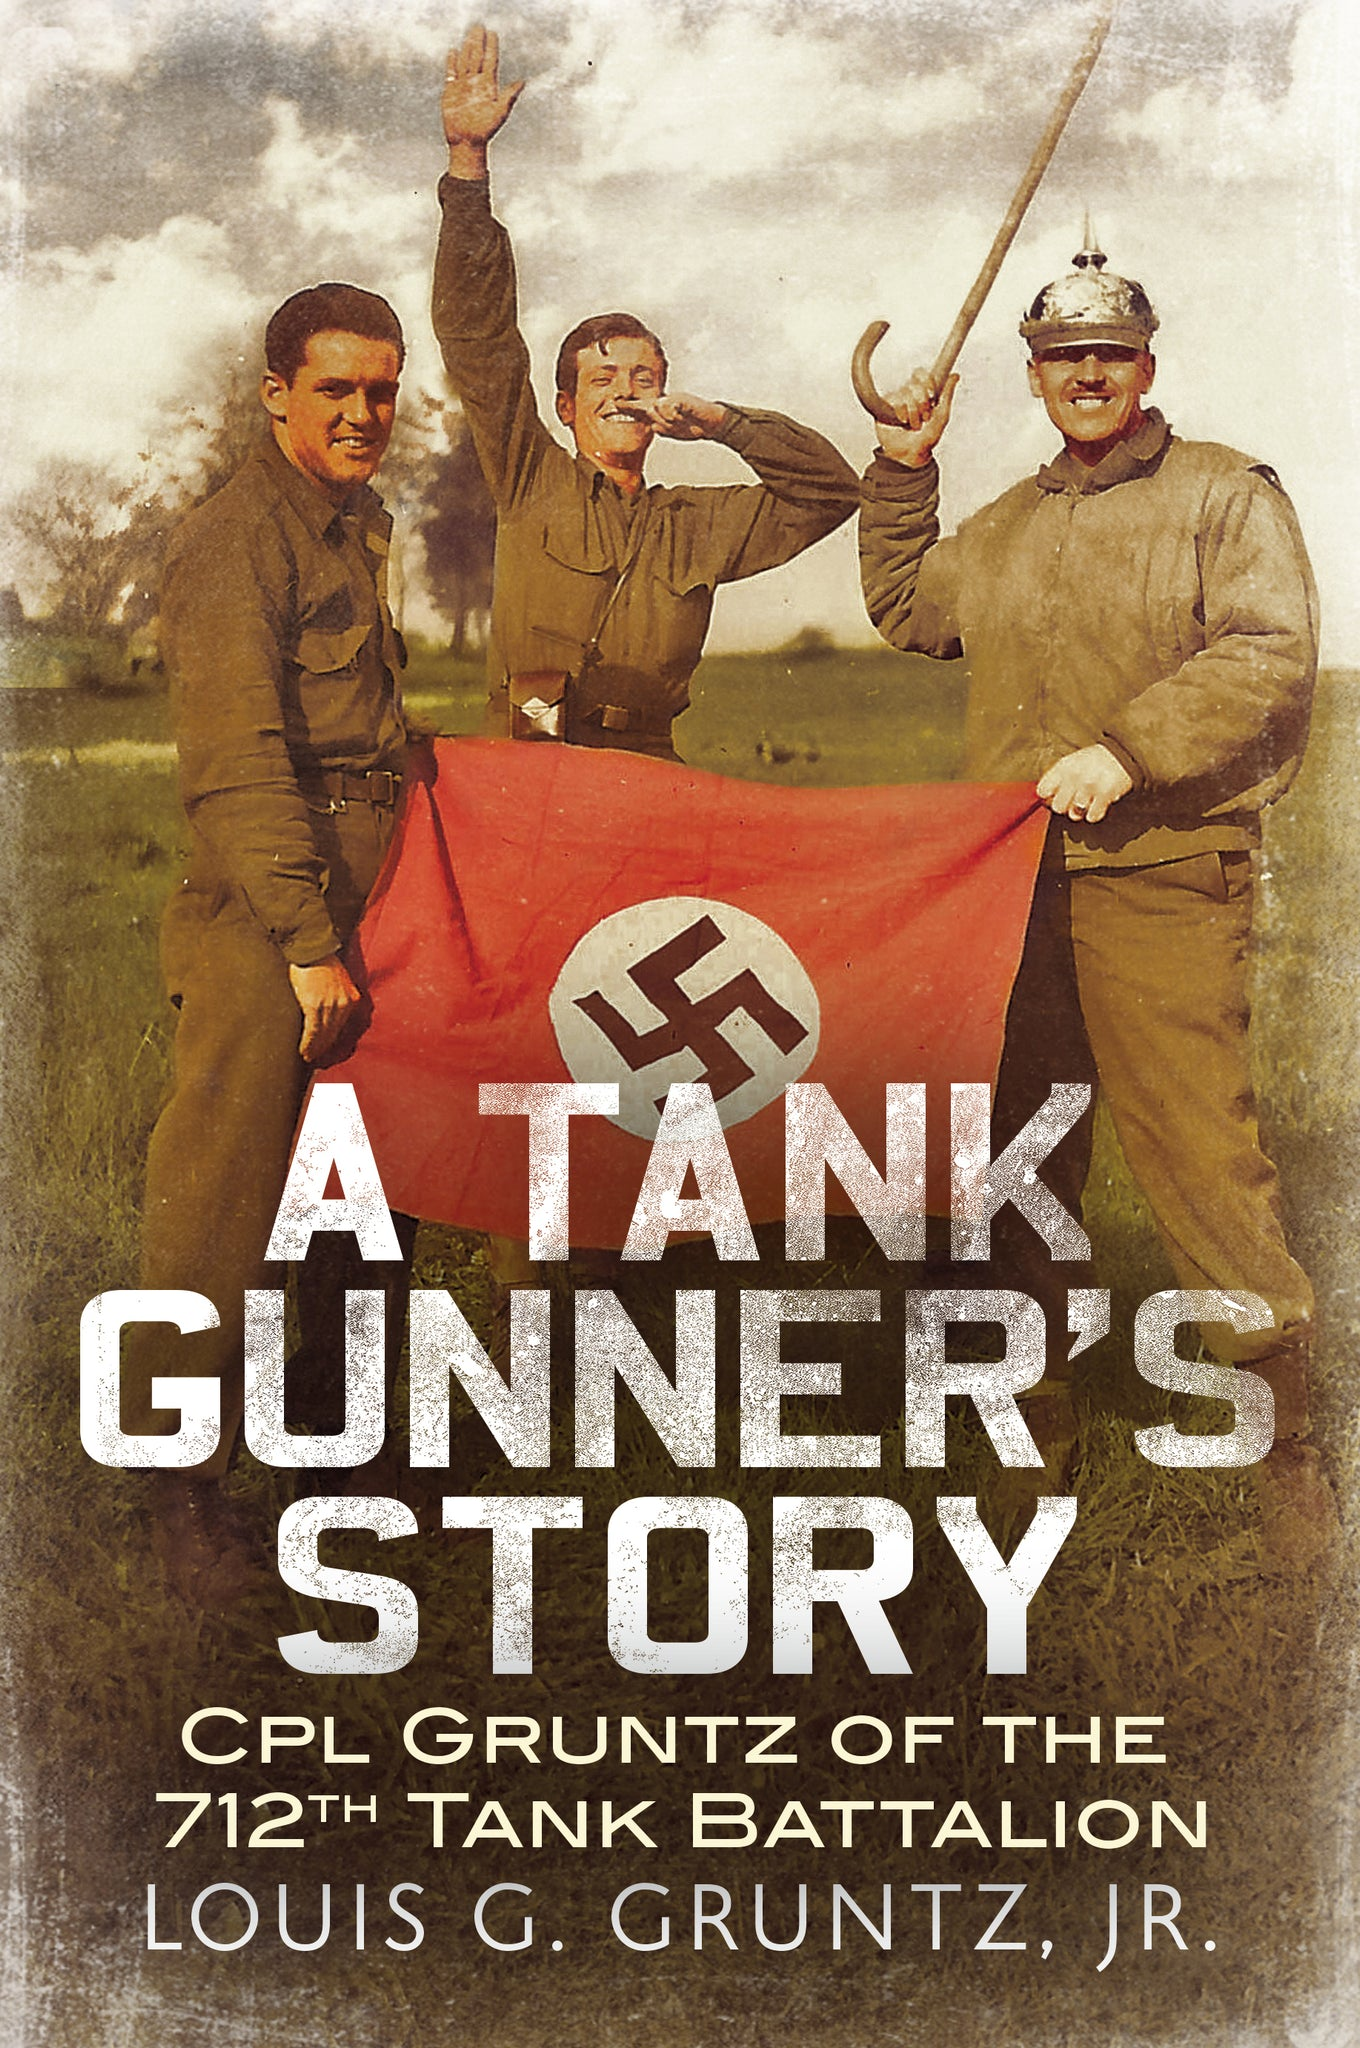 A Tank Gunner's Story: CPL Gruntz of the 712th Tank Battalion - available now from Fonthill Media